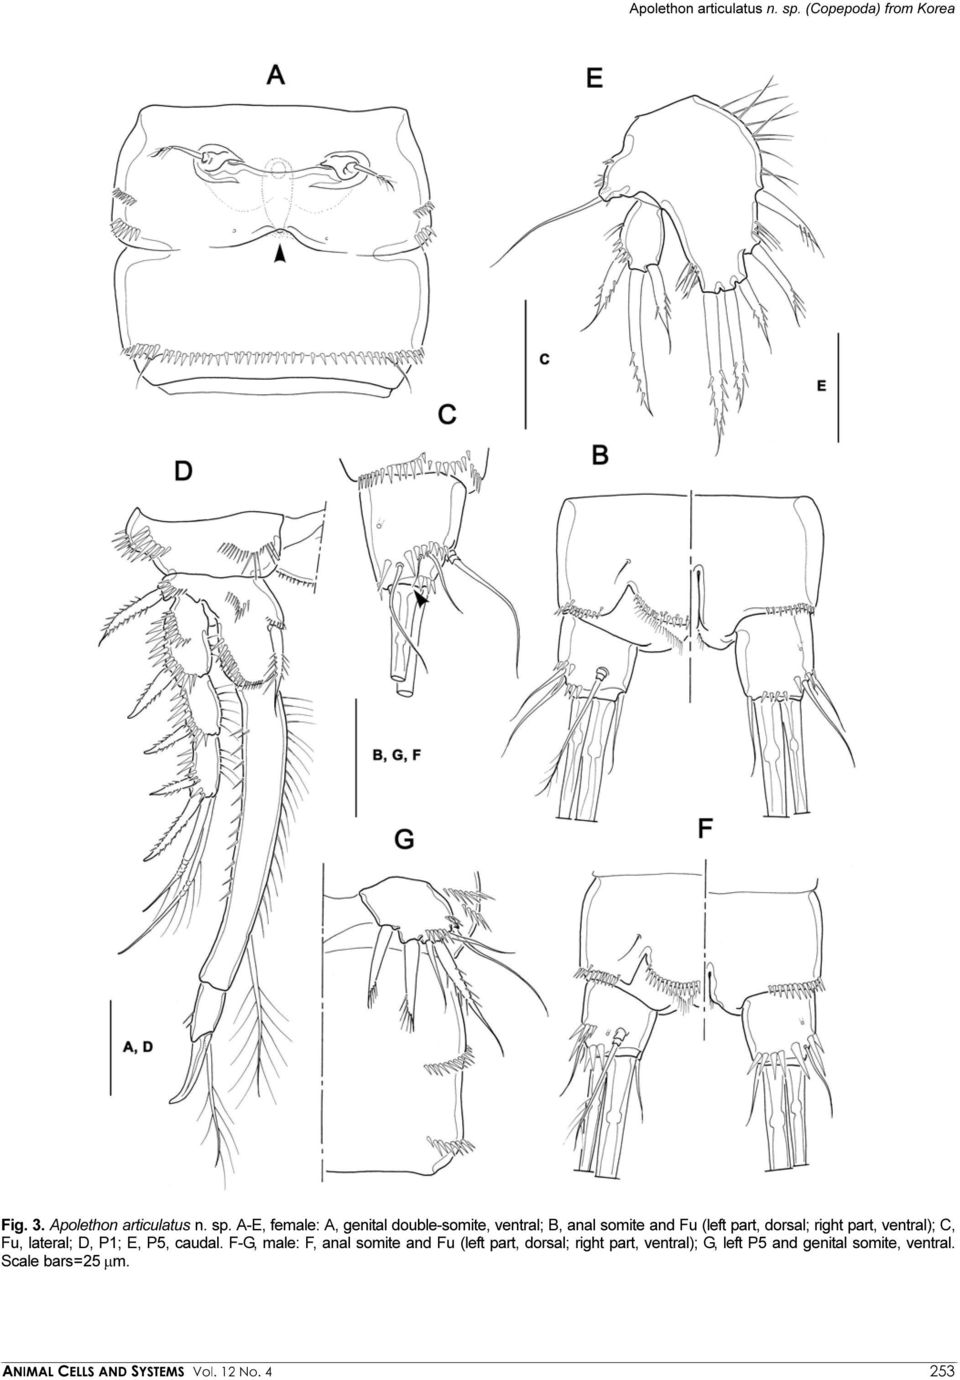 A-E, female: A, genital double-somite, ventral; B, anal somite and Fu (left part, dorsal; right part,